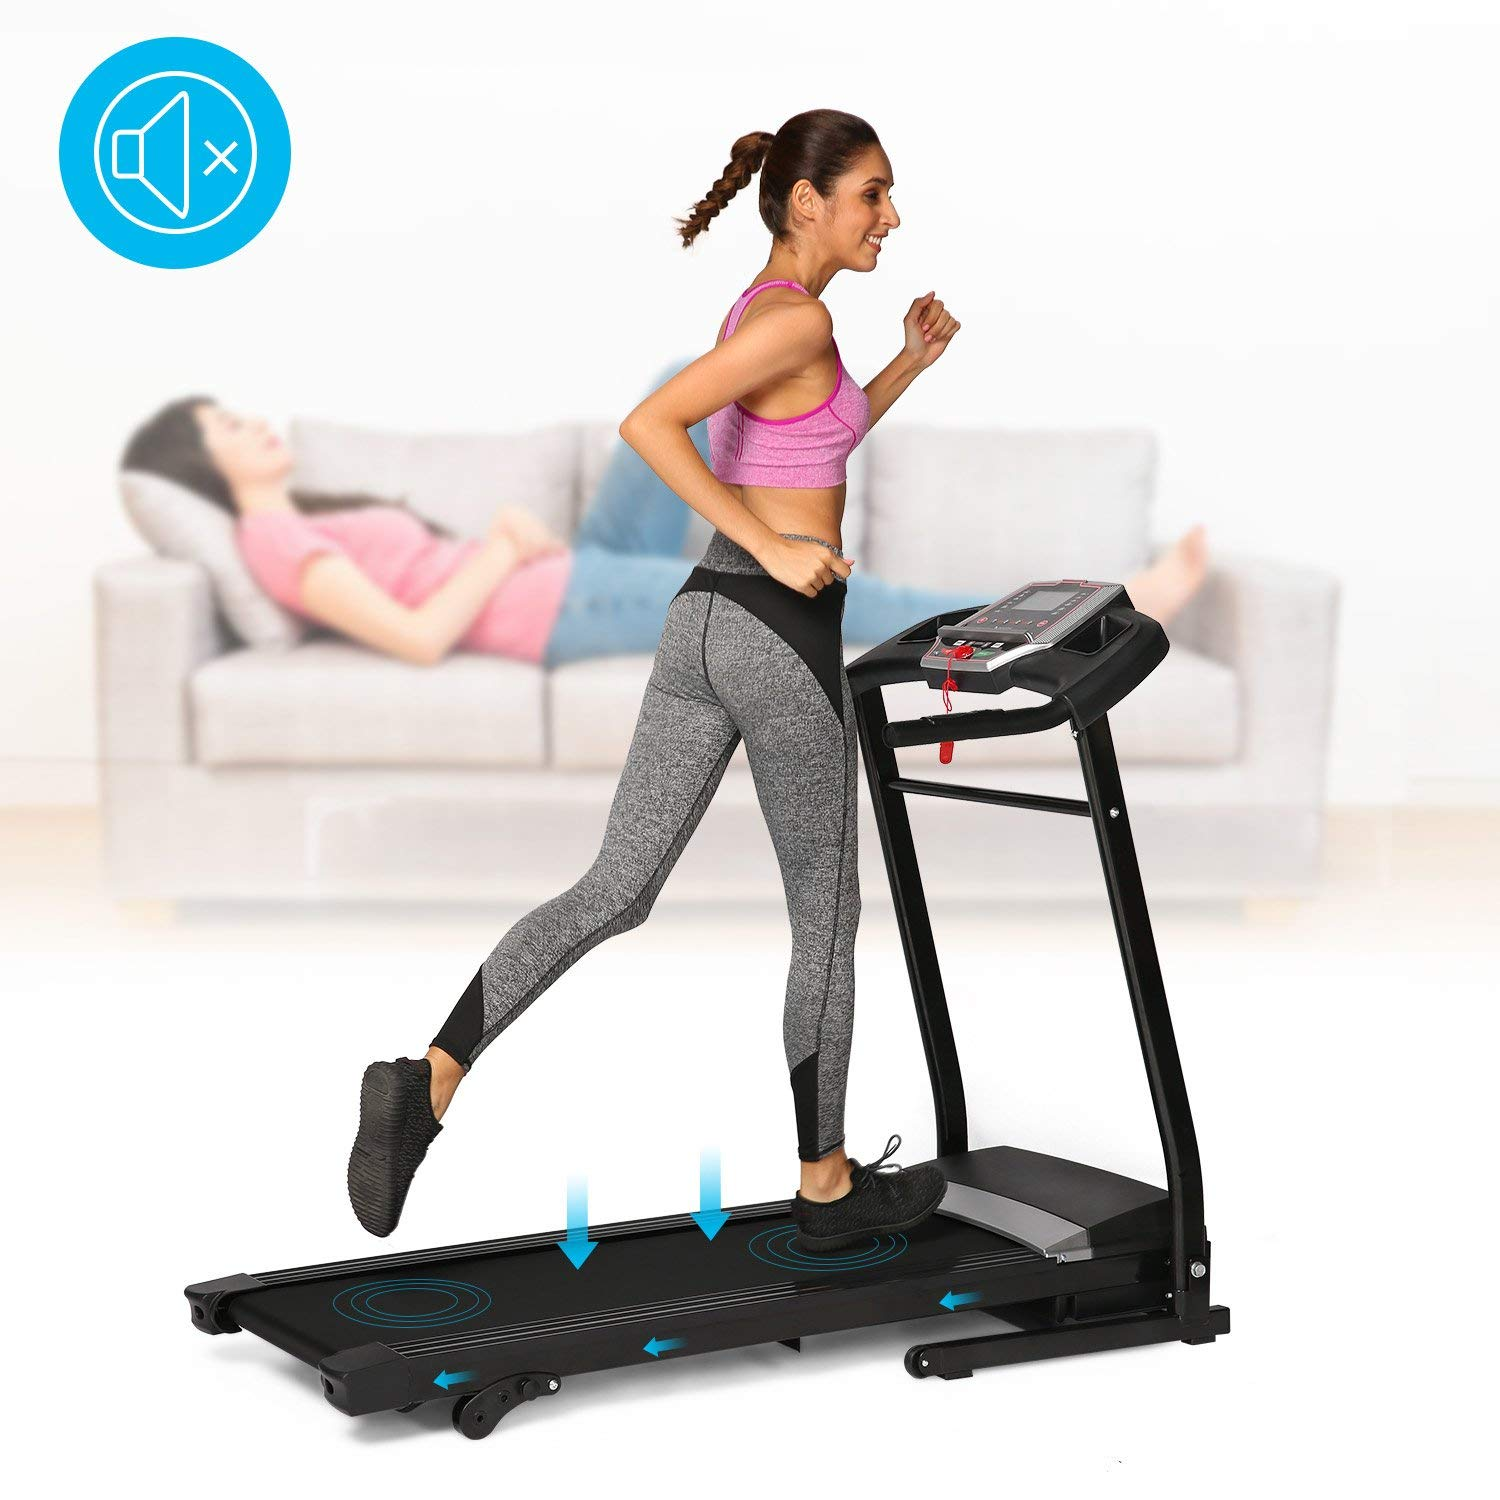 Confidence fitness magnetic manual treadmill running machine.